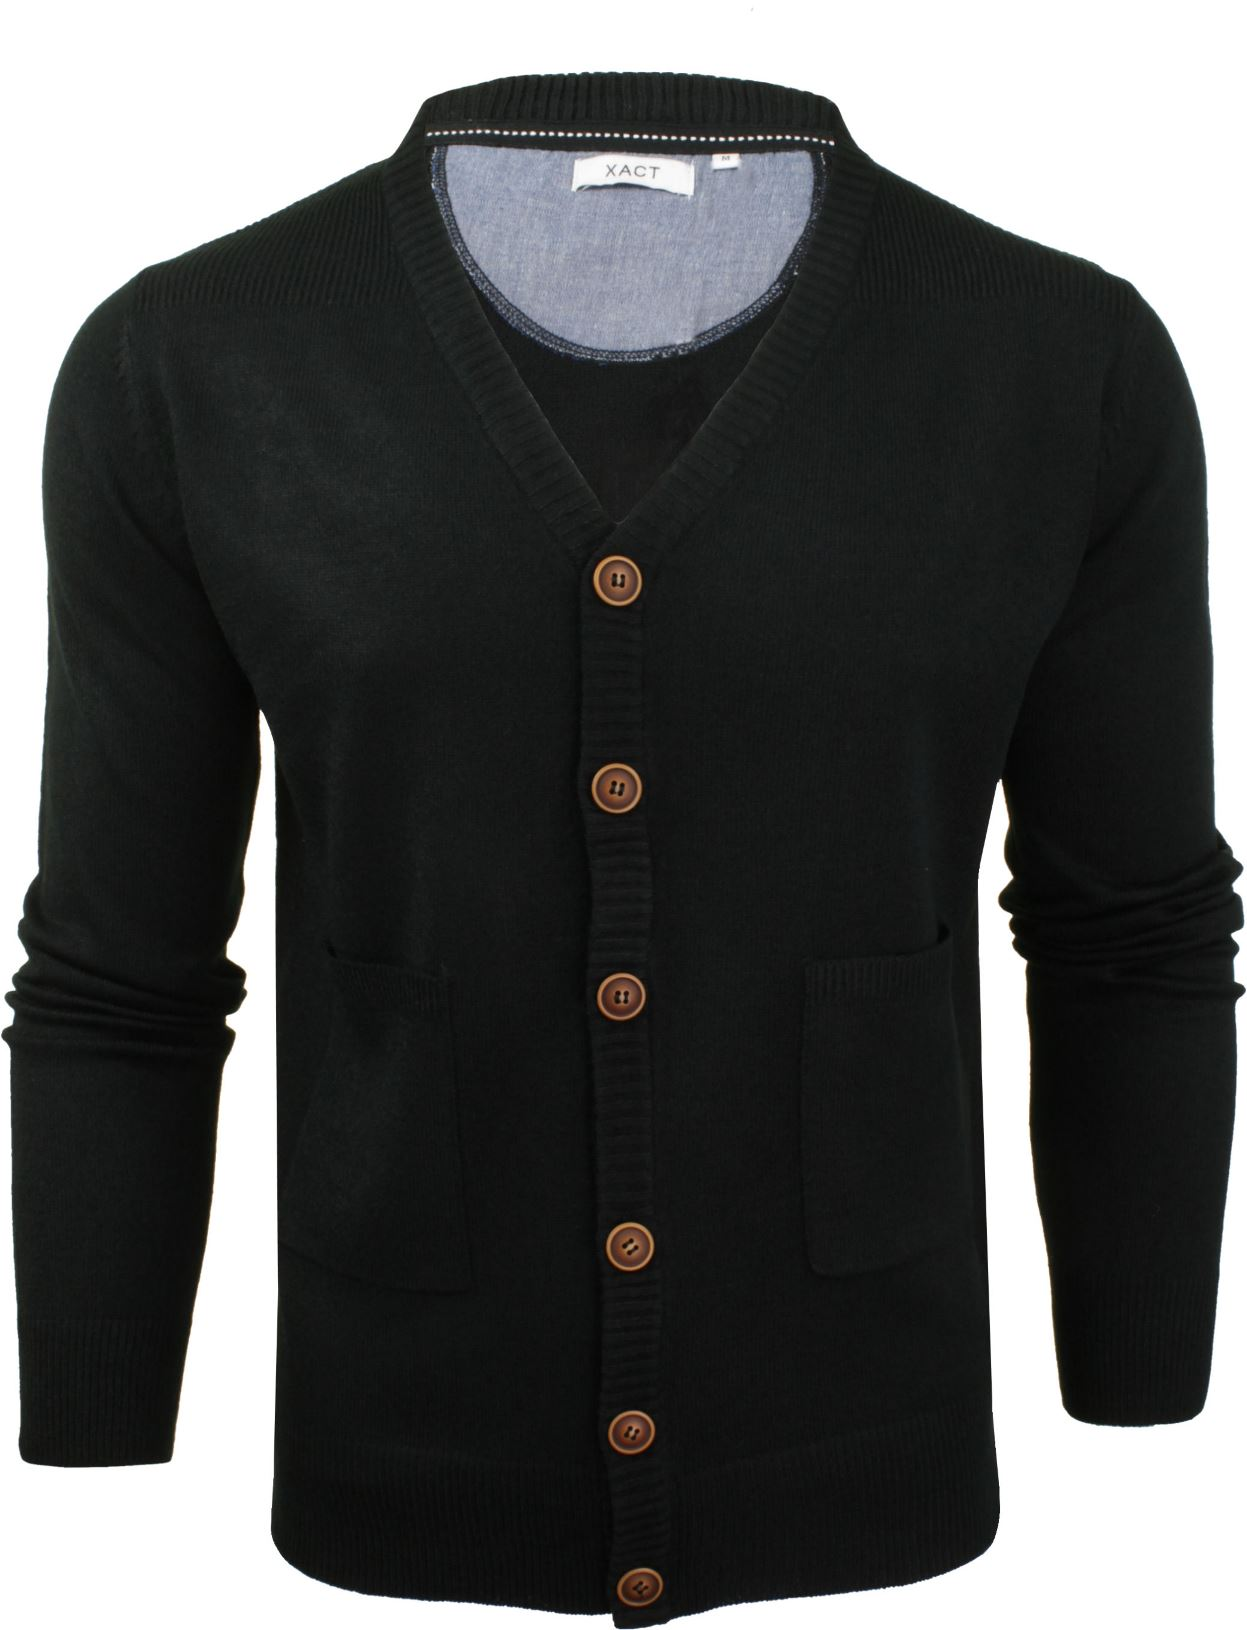 Mens Cardigan Button Front Fashion Jumper by Xact | eBay